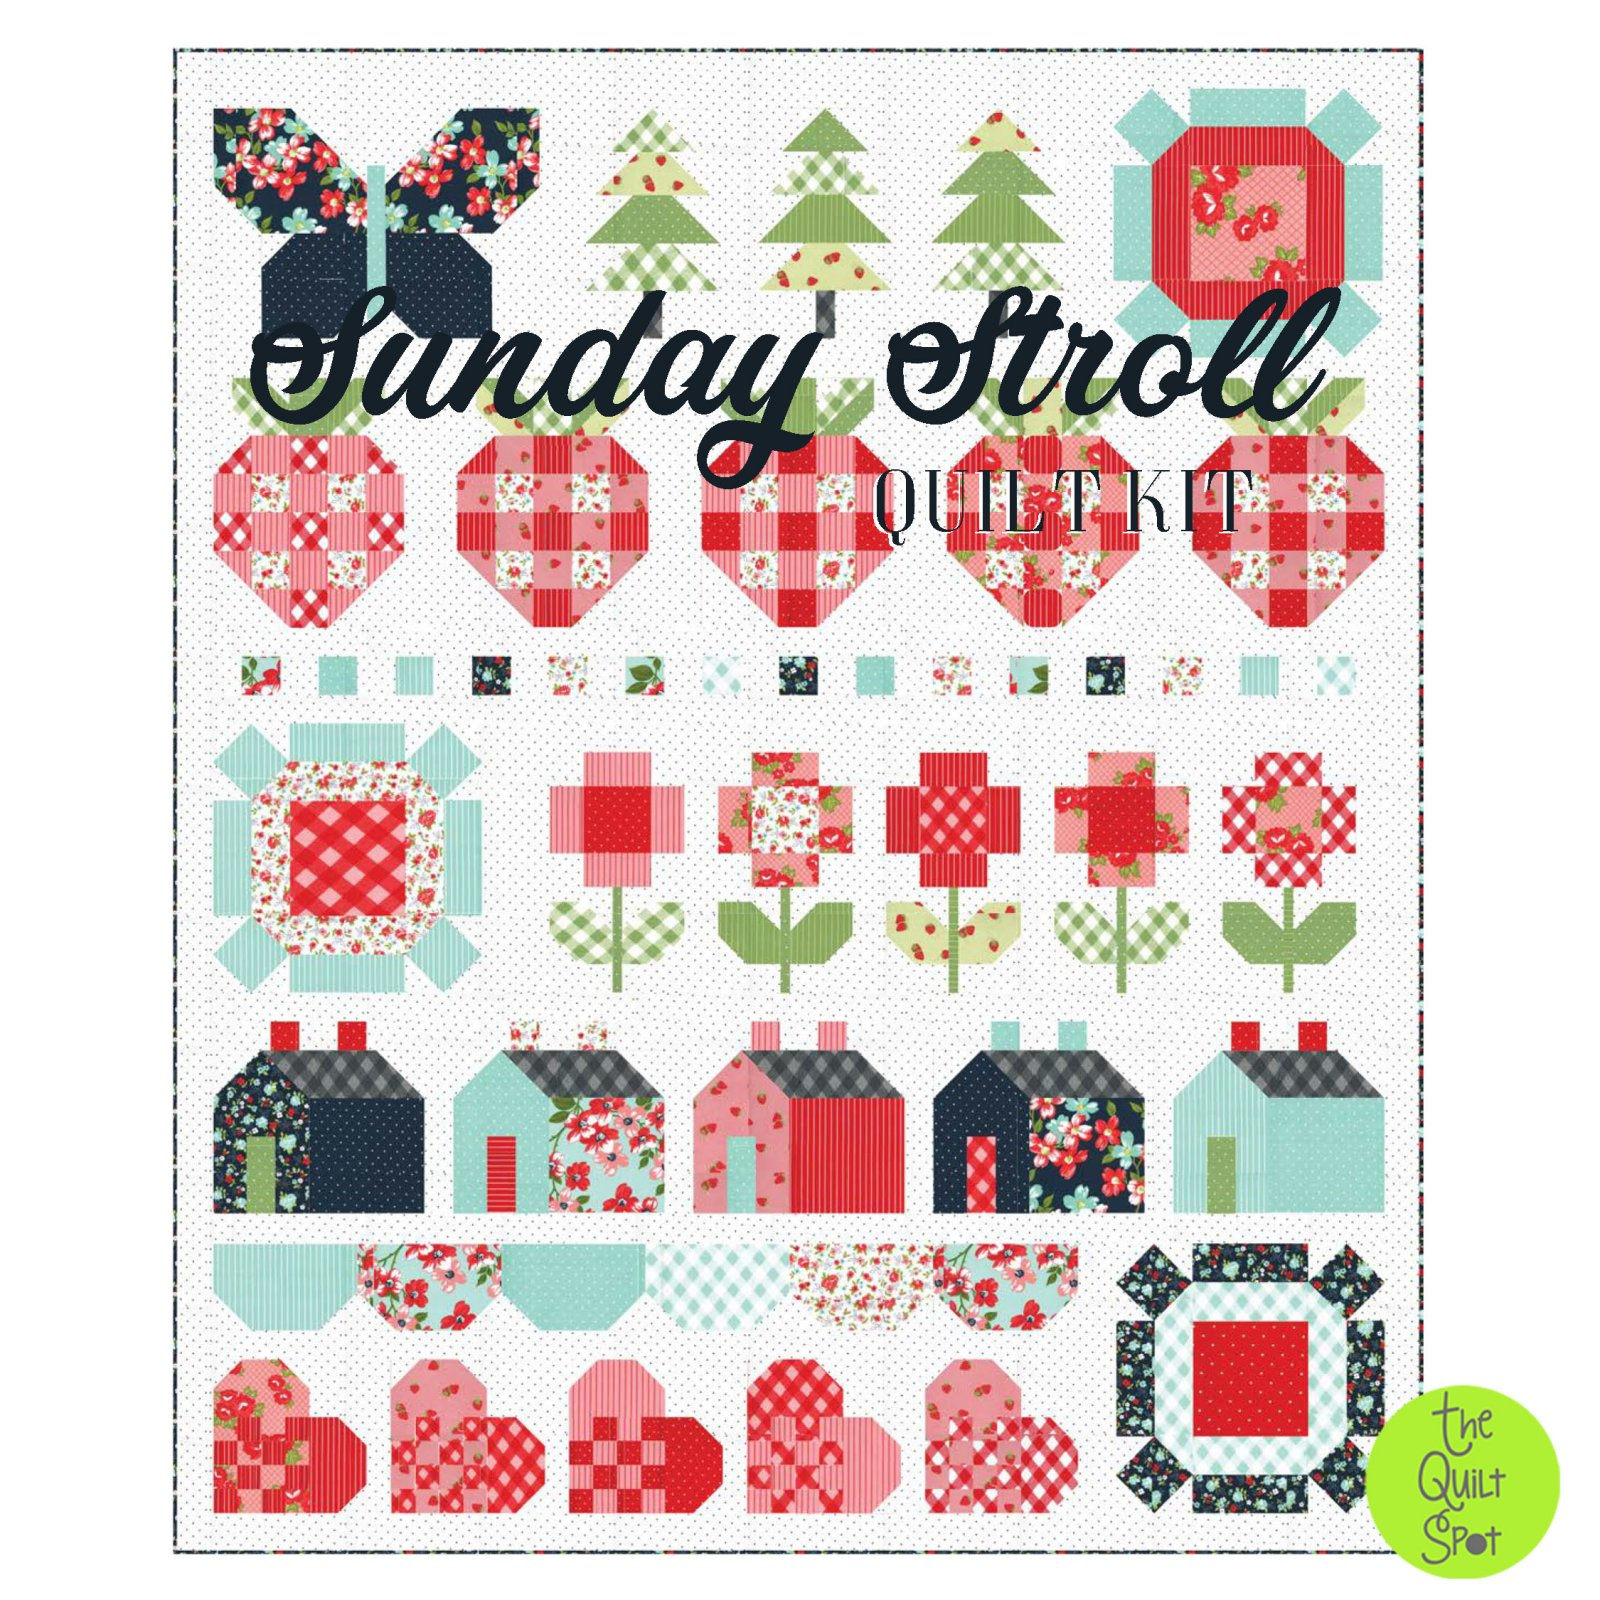 Sunday Stroll Quilt Kit by Bonnie & Camille